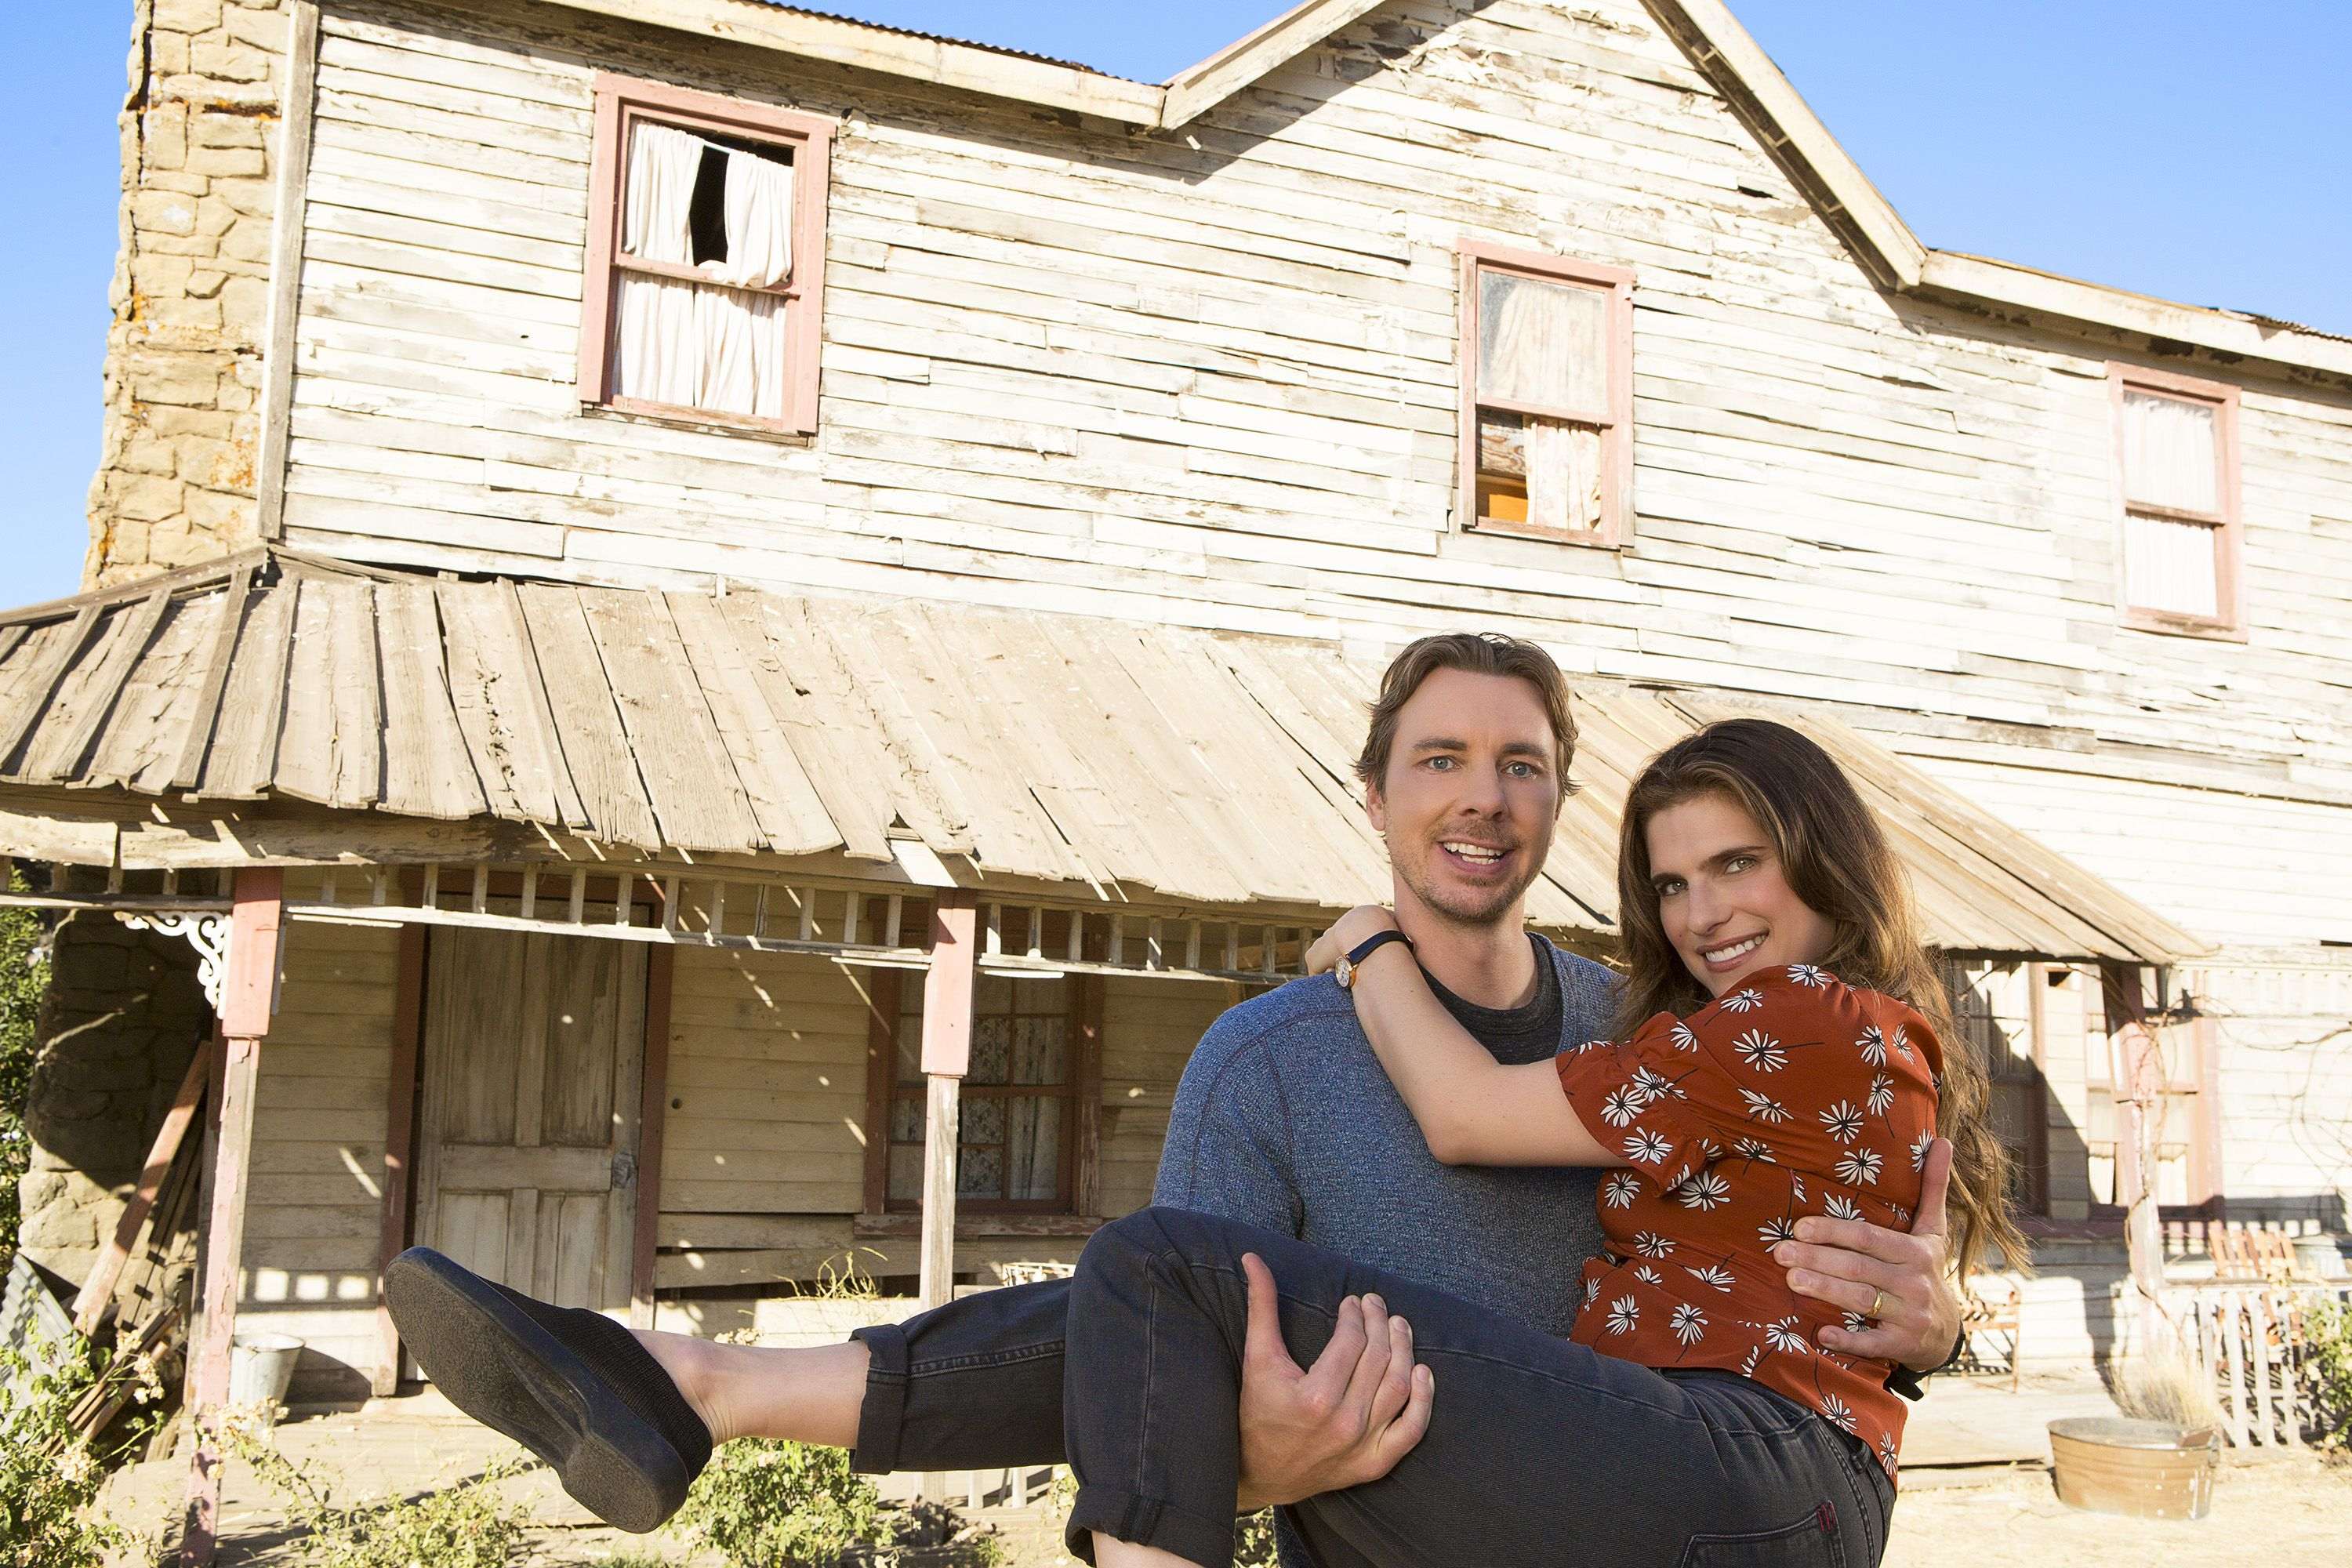 Abc S Bless This Mess Cast Talks About The Simpler Life On The Farm Newseries Tca19 Blessthismess Abc Nebraska Simple Life Sitcom